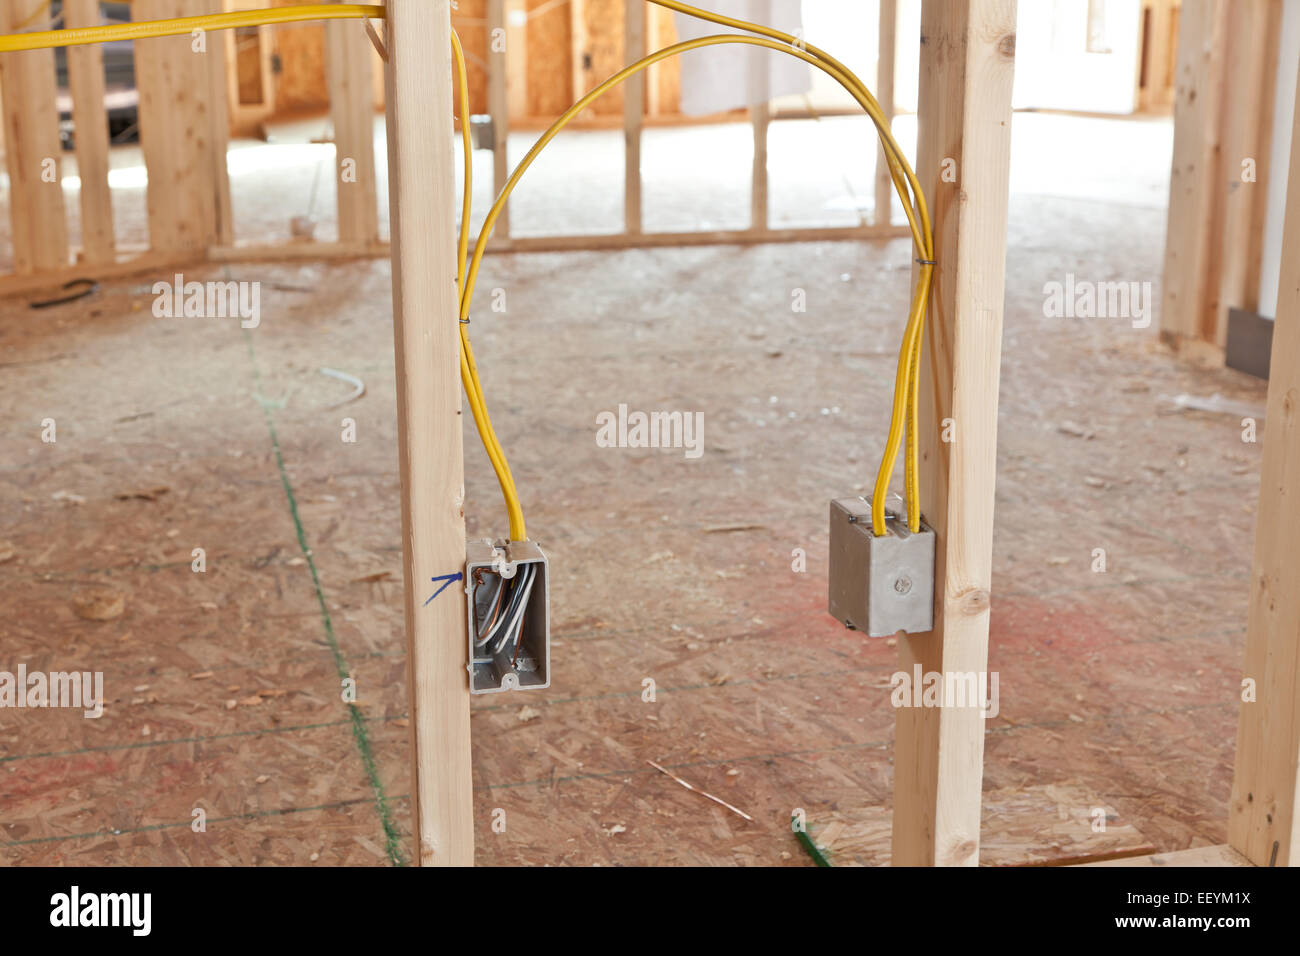 Electrical wiring in new home construction stock photo for House electrical wiring